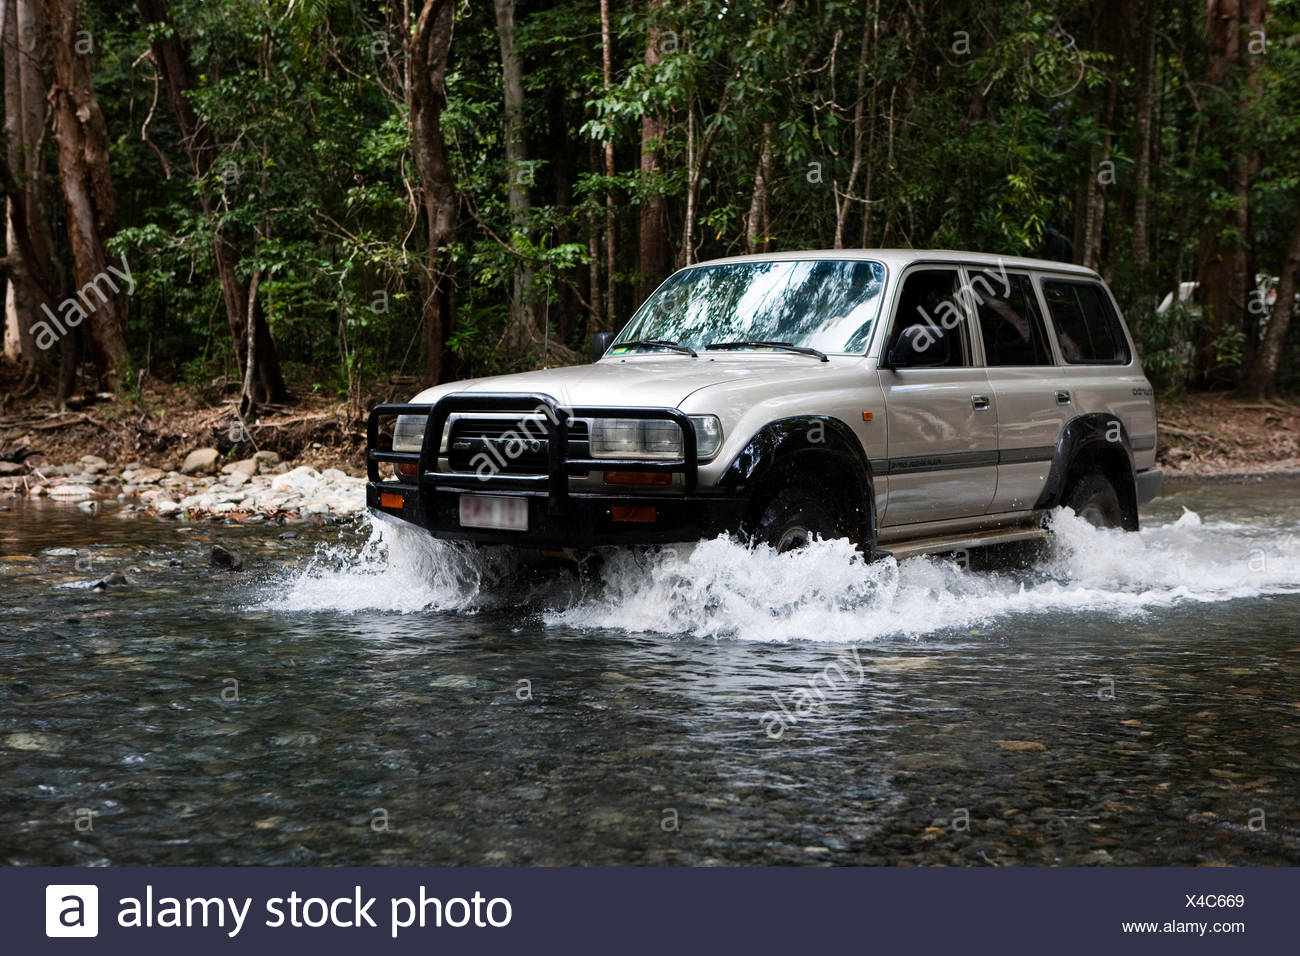 Jeep crossing a river in a rainforest in Daintree National Park, Queensland, Australia - Stock Image